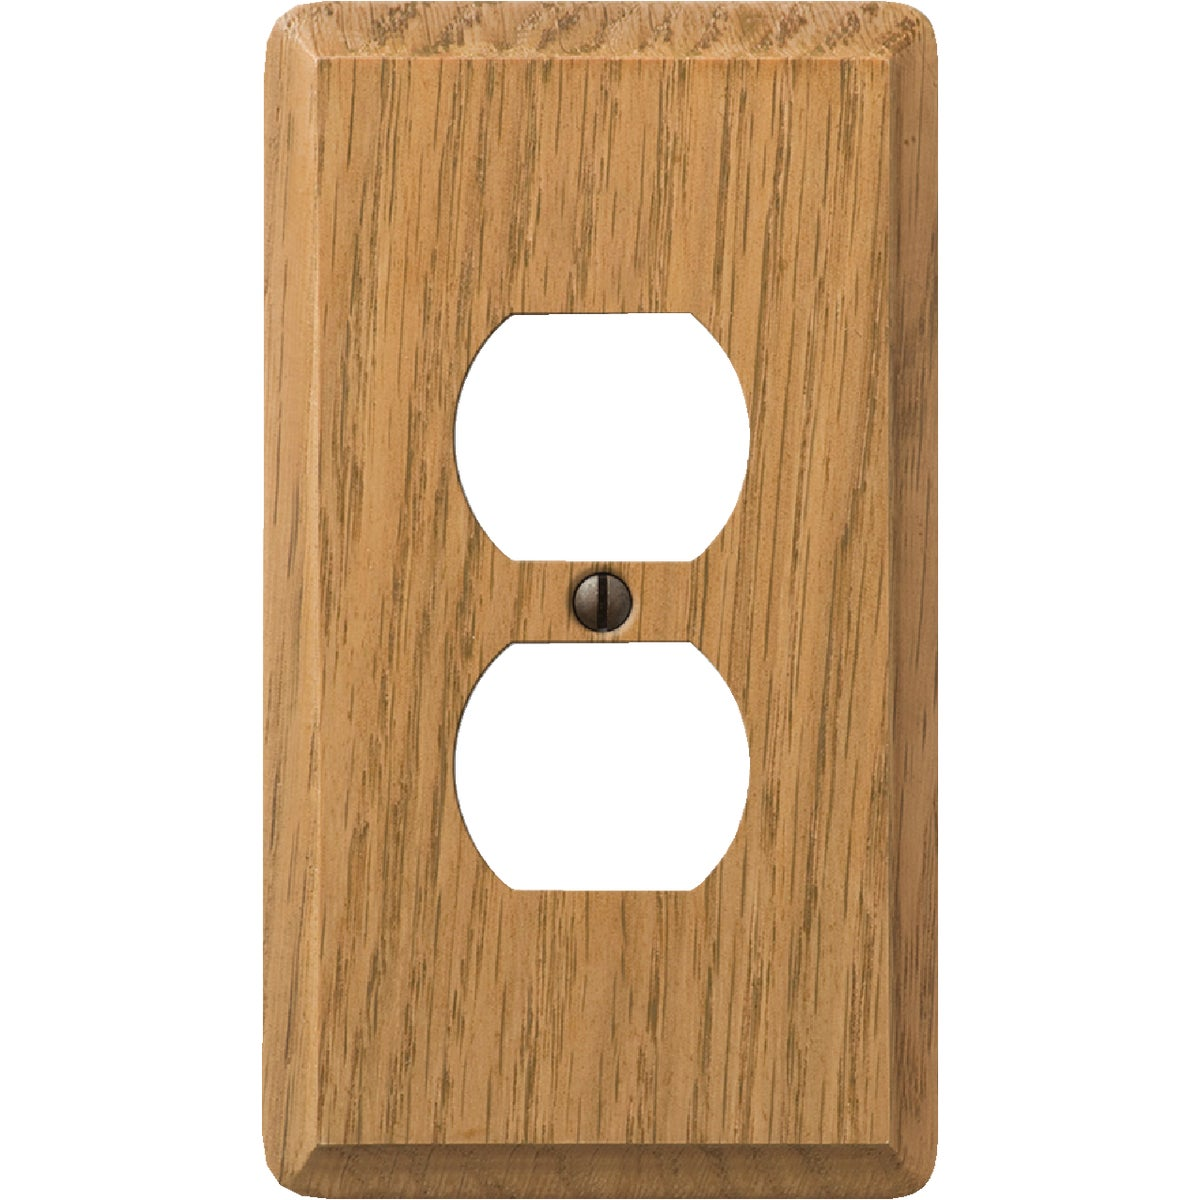 OAK OUTLET WALL PLATE - 908L by Jackson Deerfield Mf